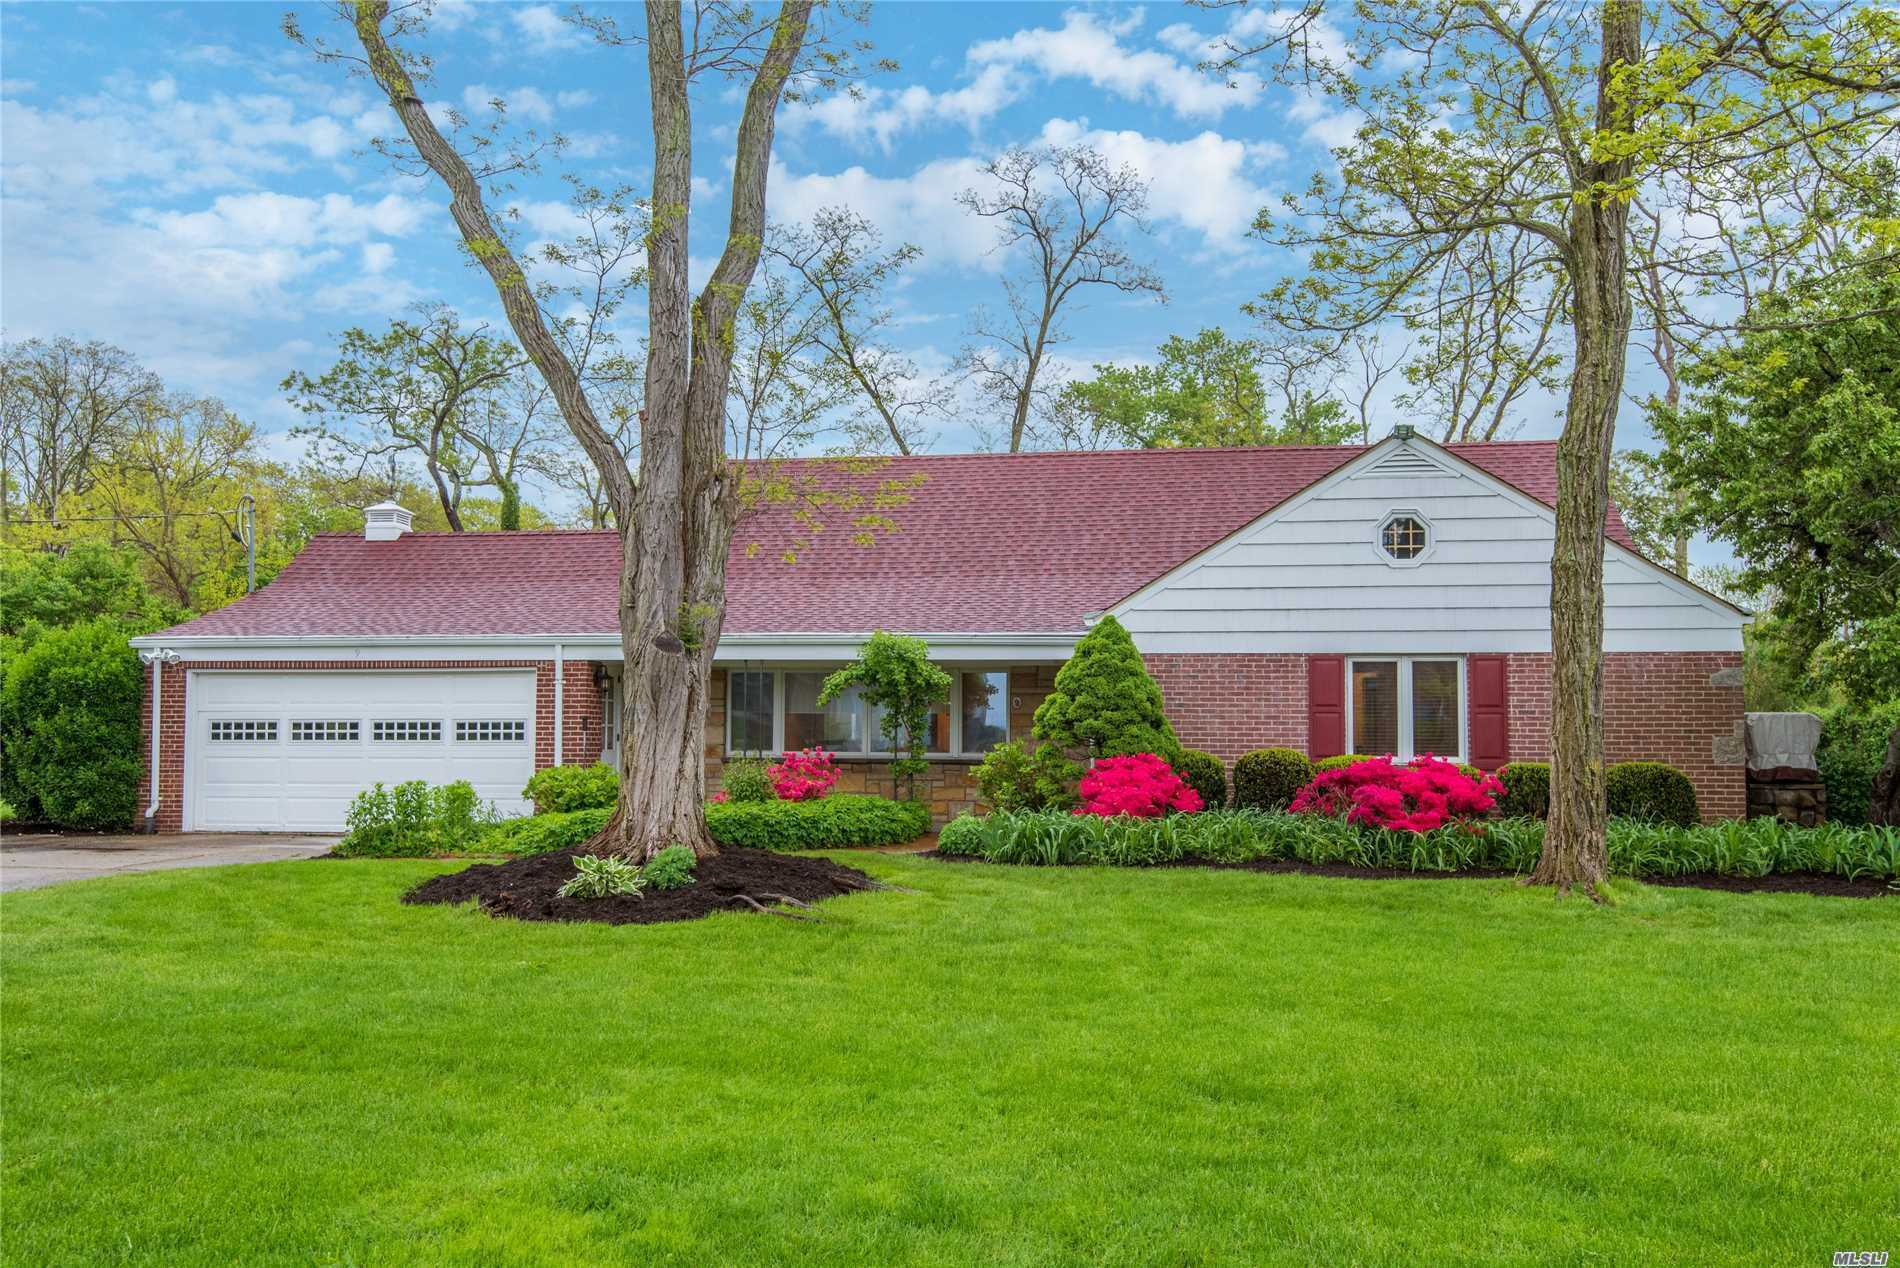 Sundrenched 3 Bedrm Ranch, with waterviews set on .6 park-like Acres which were formerly part of JP Morgan's estate. Enjoy resort style living year-round or as a weekend retreat. Boating, Swimming and Beach Rights just out your front door w/ HOA dues. Golf & Tennis Nearby.